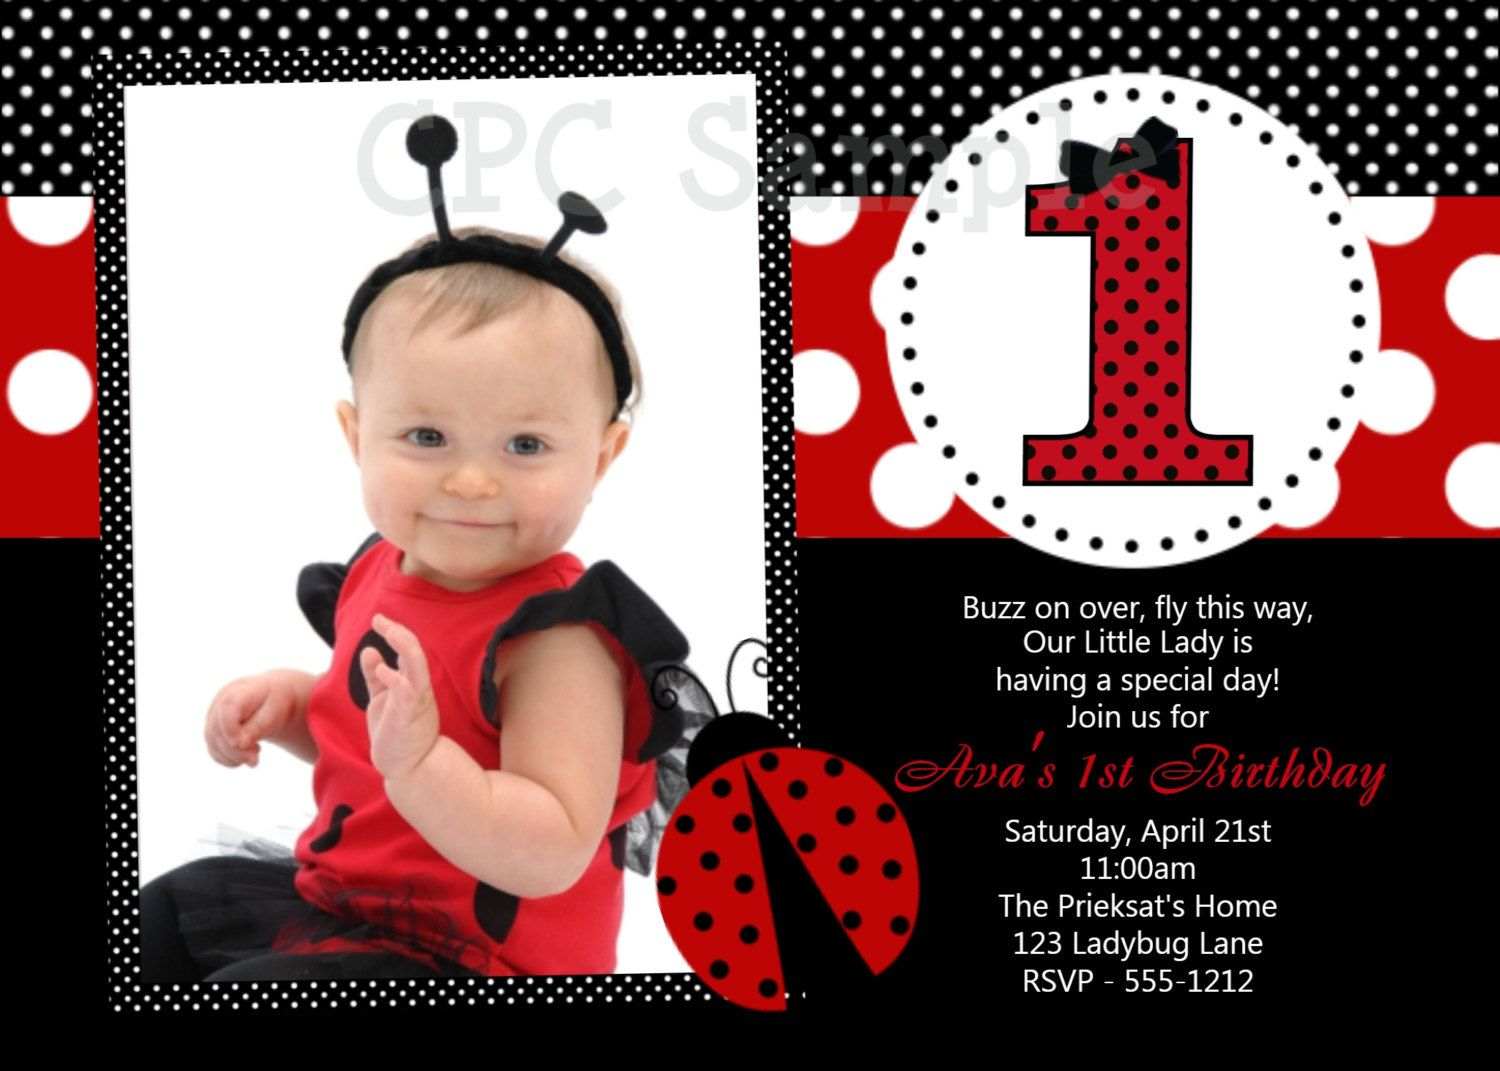 Ladybug Birthday Invitation Ladybug Birthday Party Invitation ...